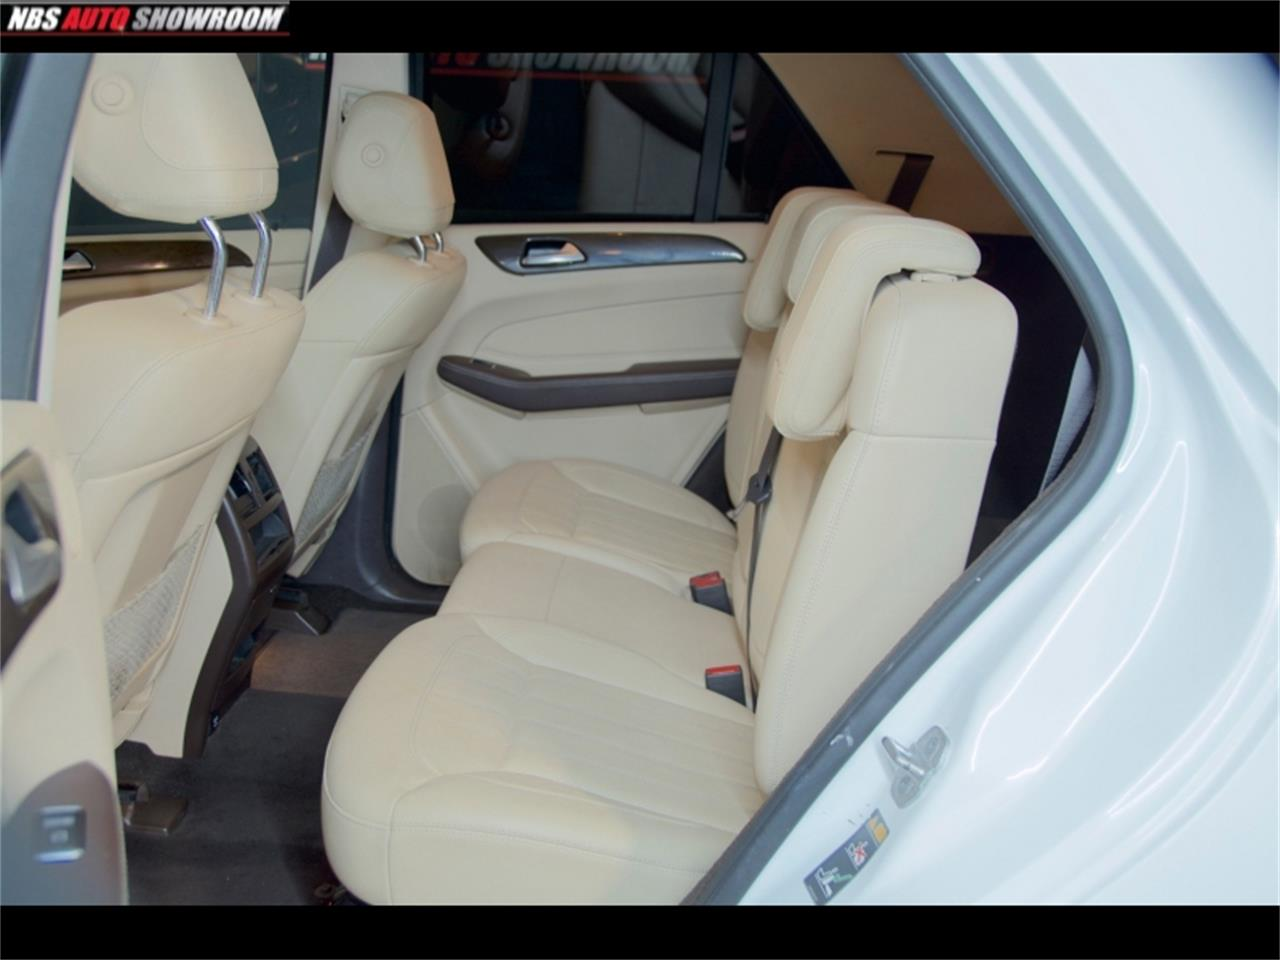 2016 Mercedes-Benz GL-Class (CC-1377002) for sale in Milpitas, California